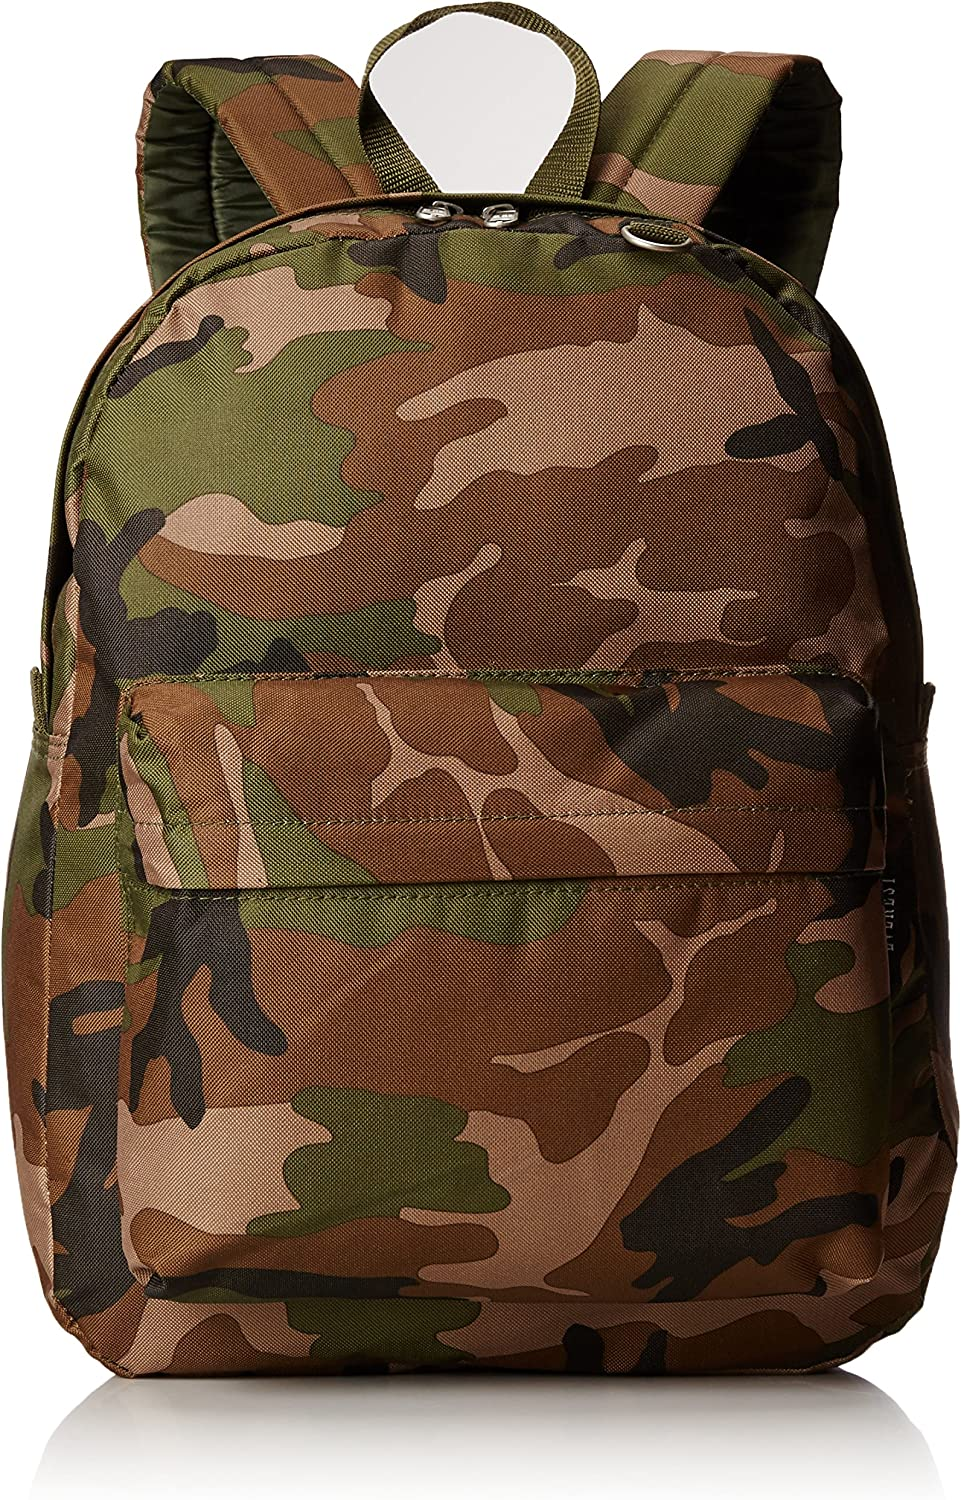 Everest Classic Woodland Camo Size Camouflage One New sales Backpack Very popular